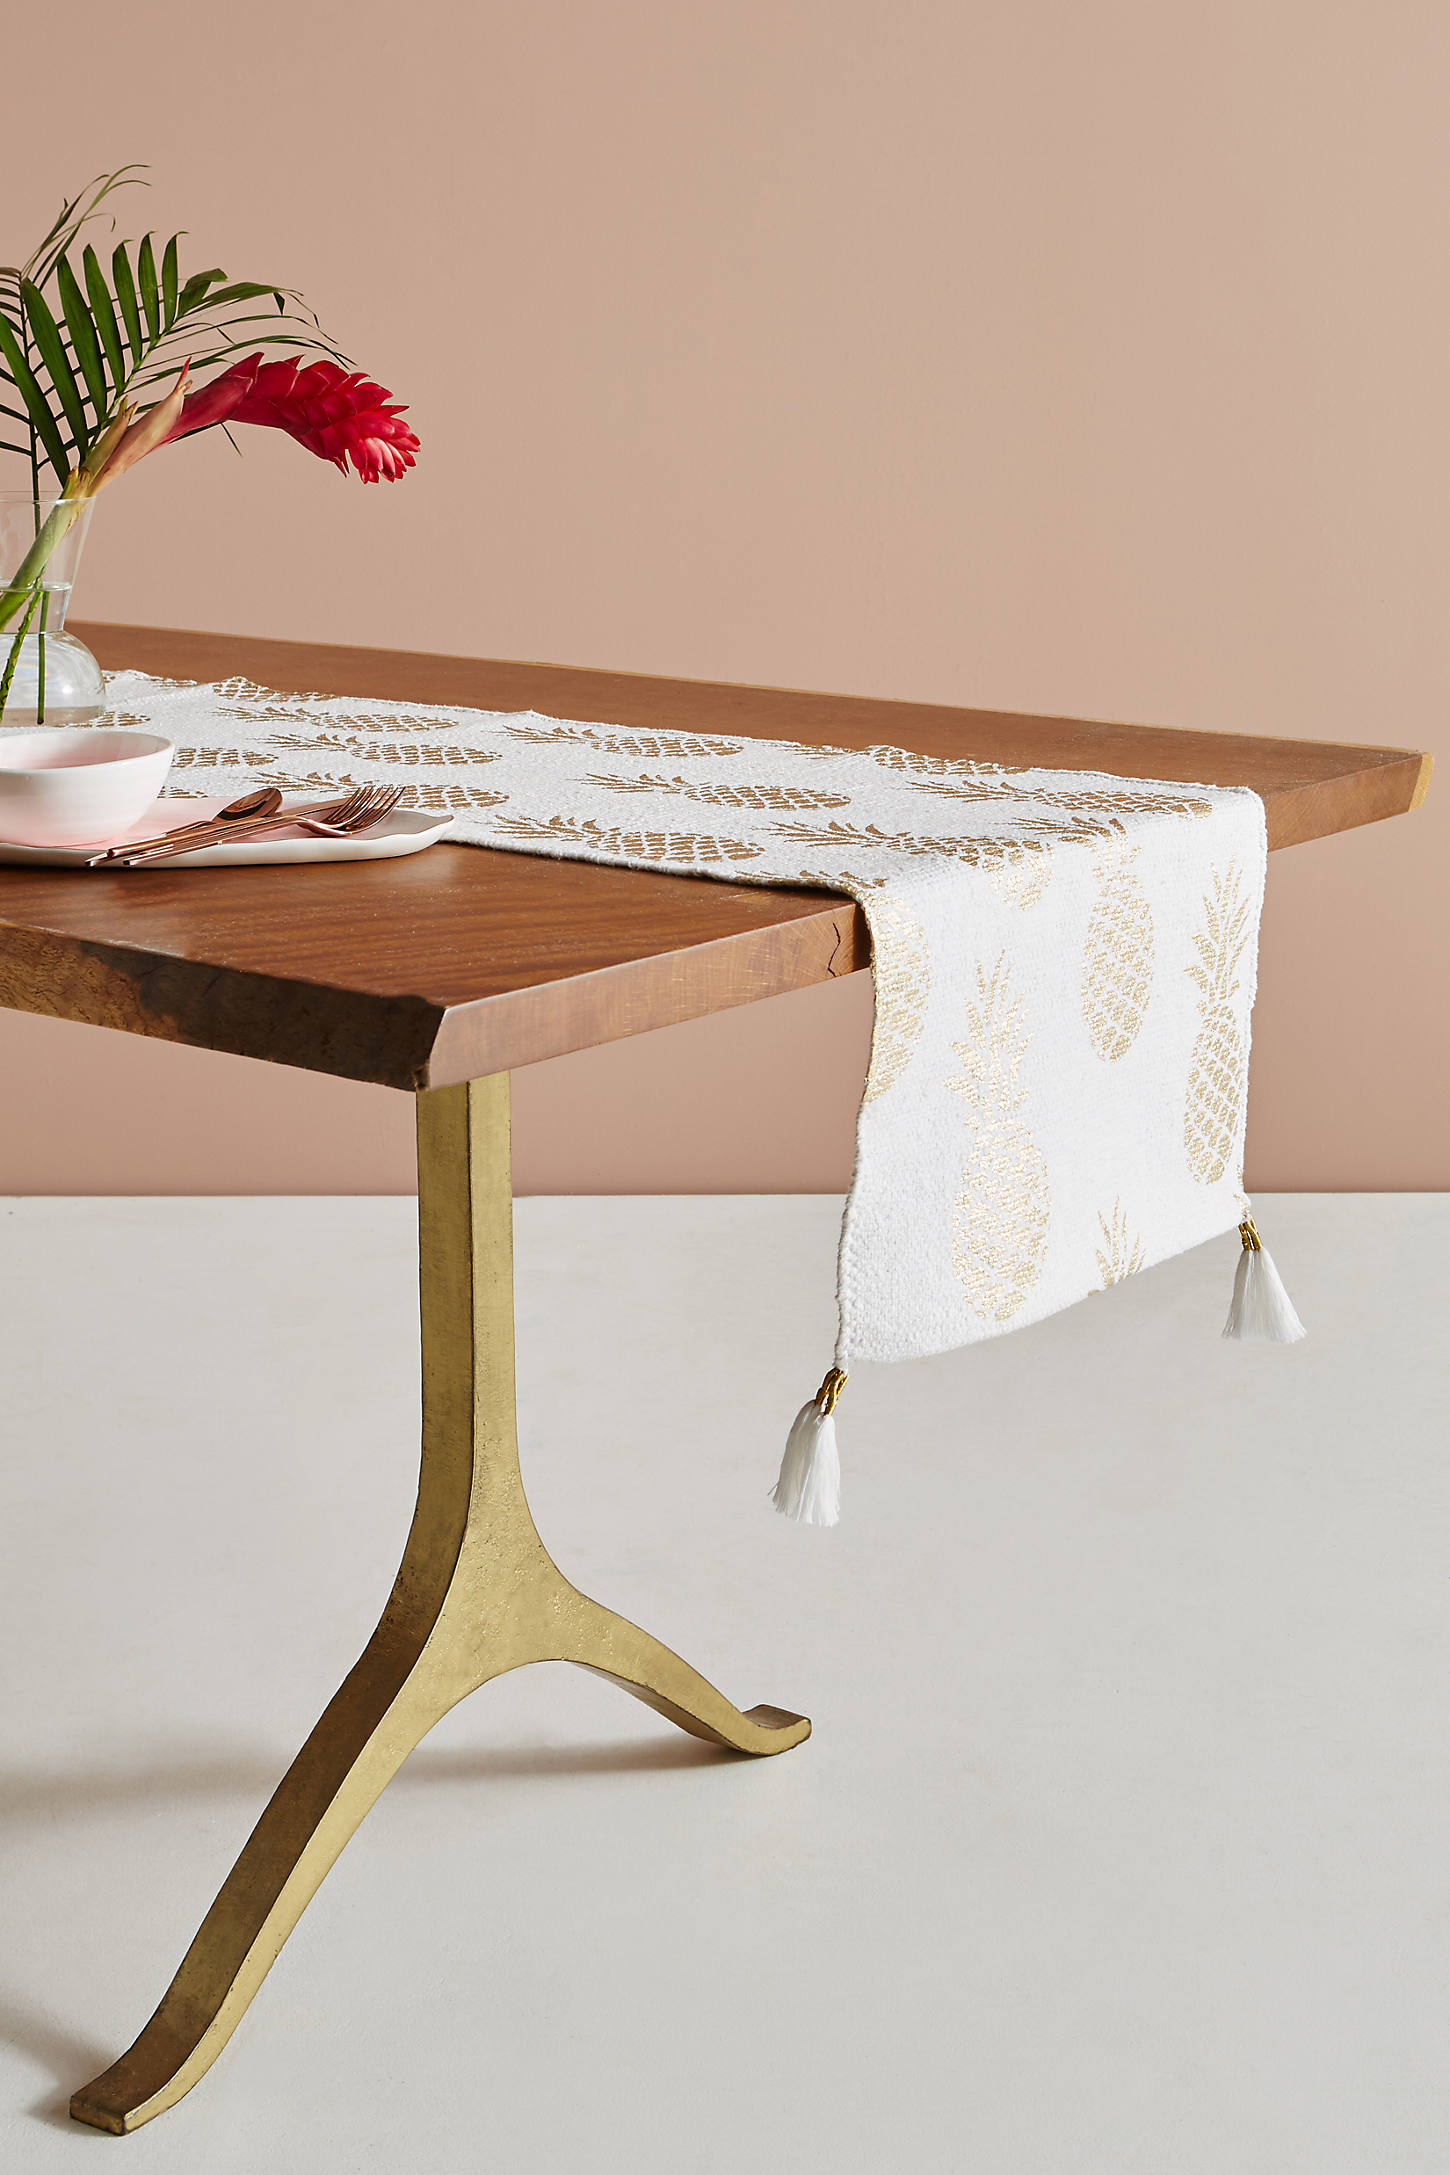 Golden Pineapple Table Runner